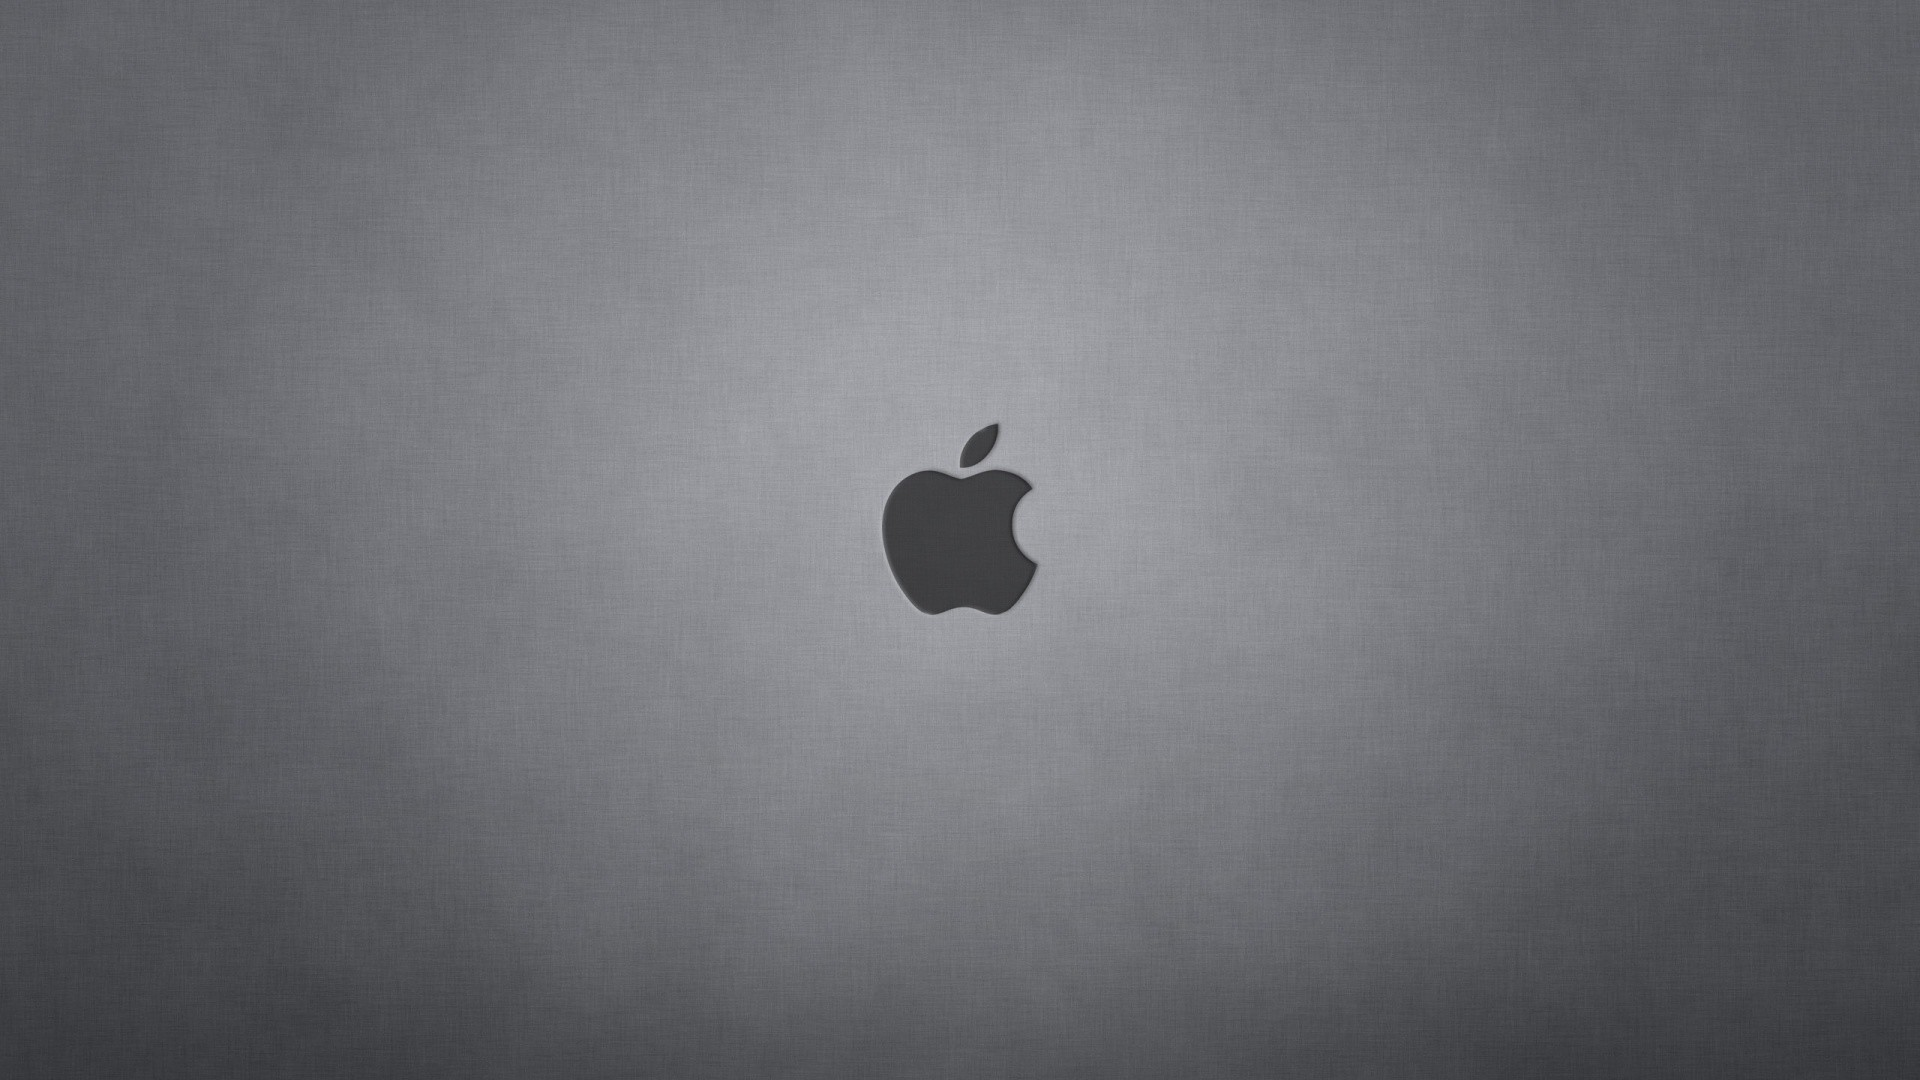 HD Wallpapers for Mac. 1920×1080